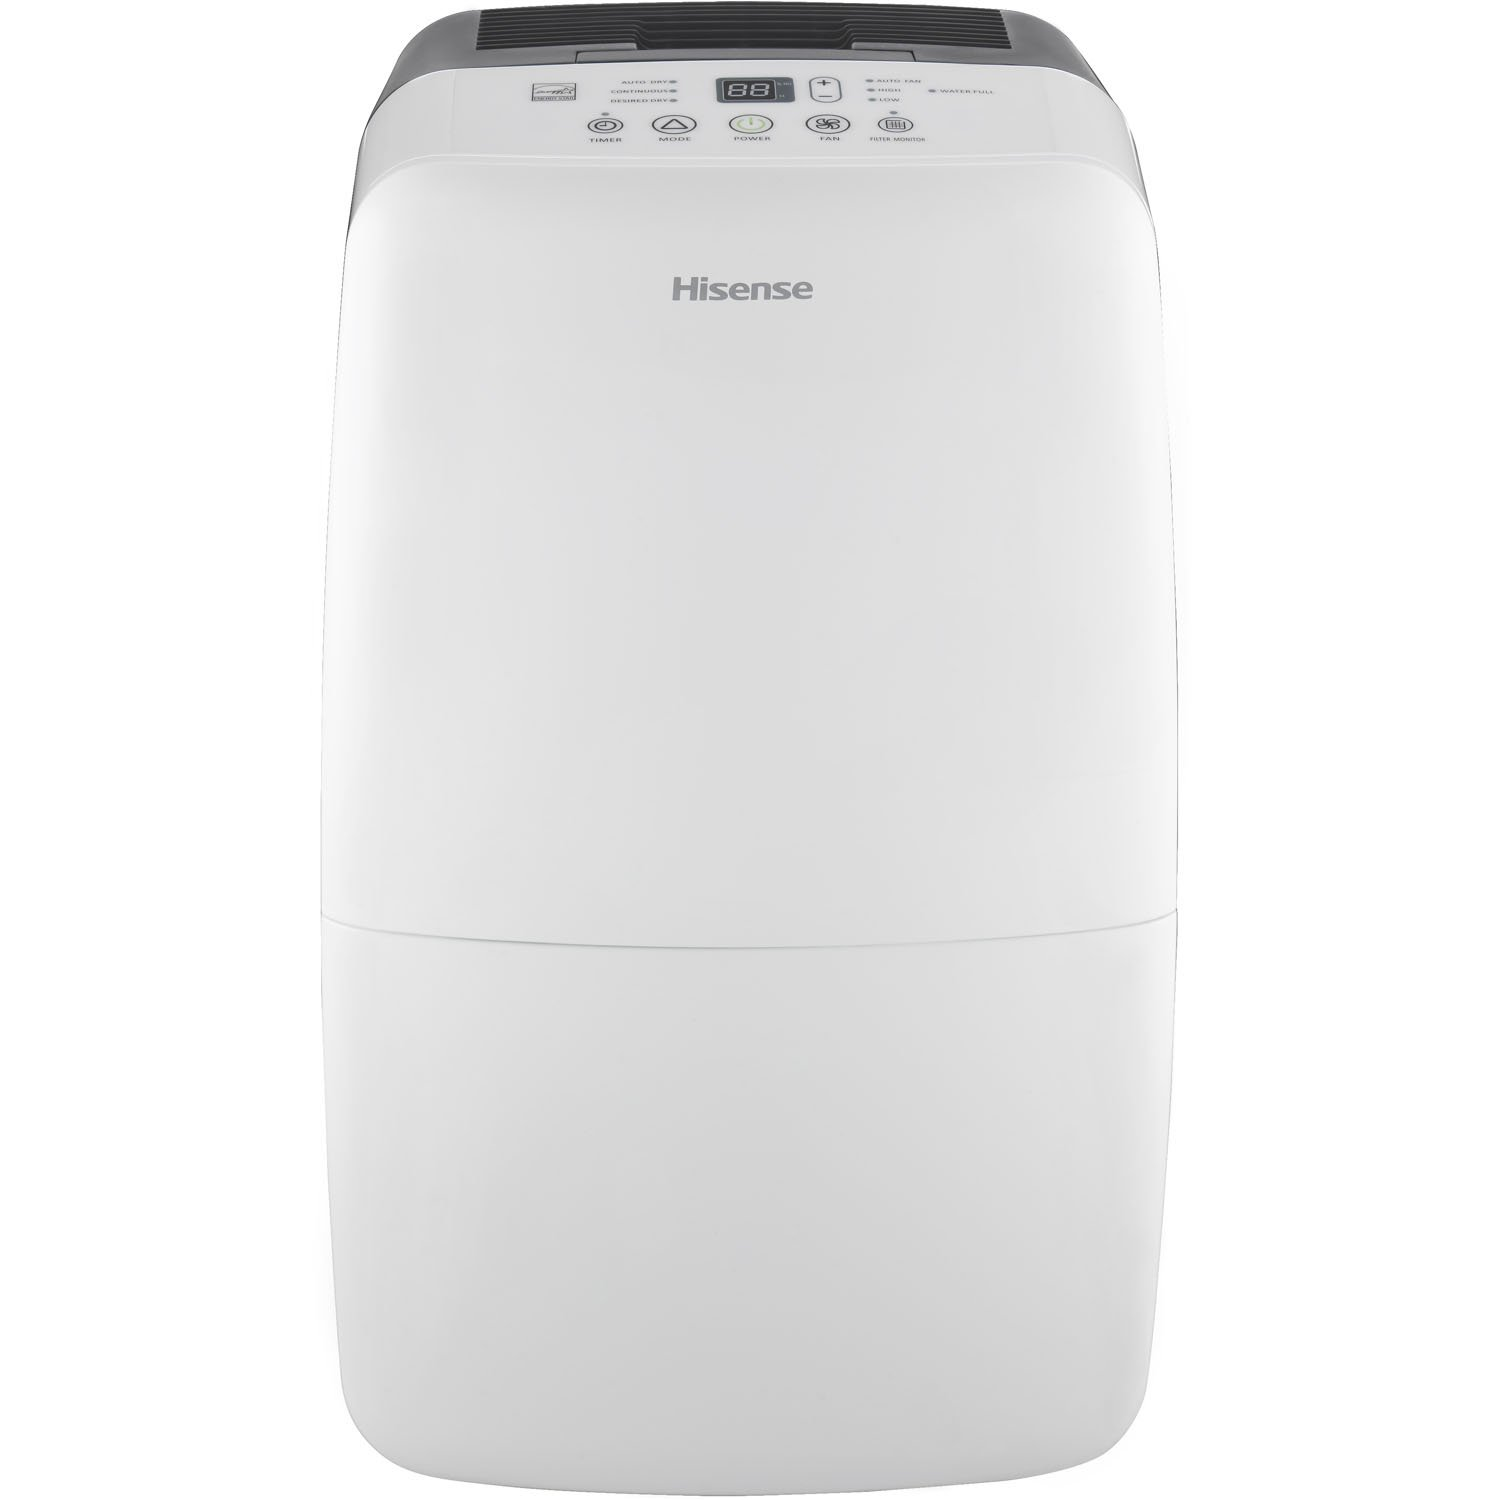 Hisense 70 dehumidifier with built in pump. Best Dehumidifier Reviews and Ratings of 2017